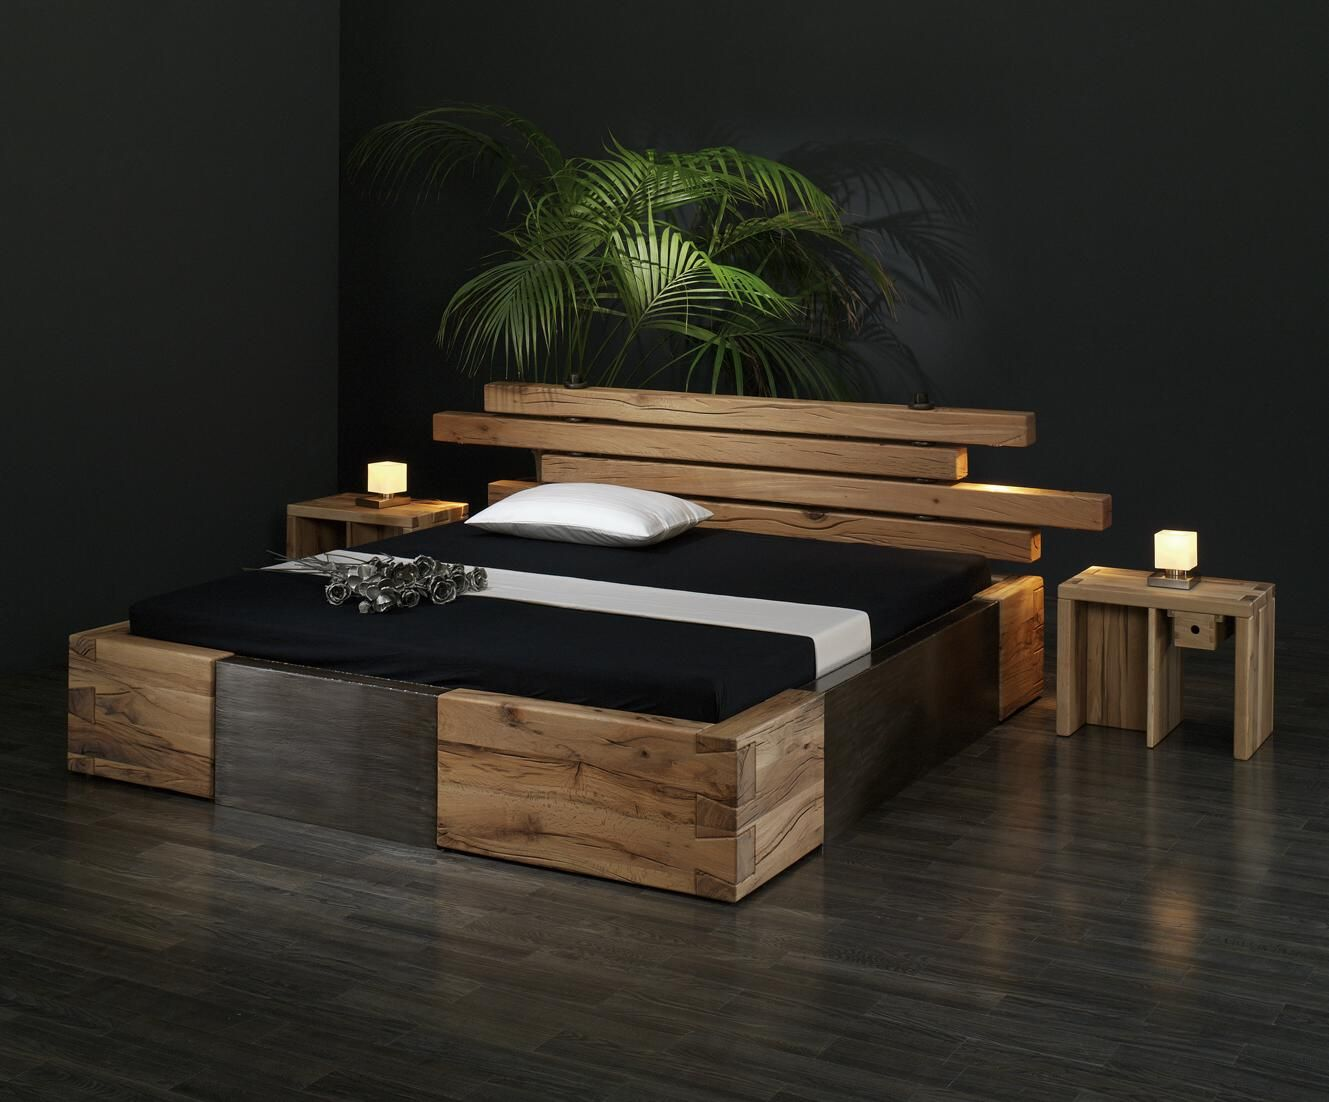 holz bett design google search bedroom in 2018 pinterest. Black Bedroom Furniture Sets. Home Design Ideas